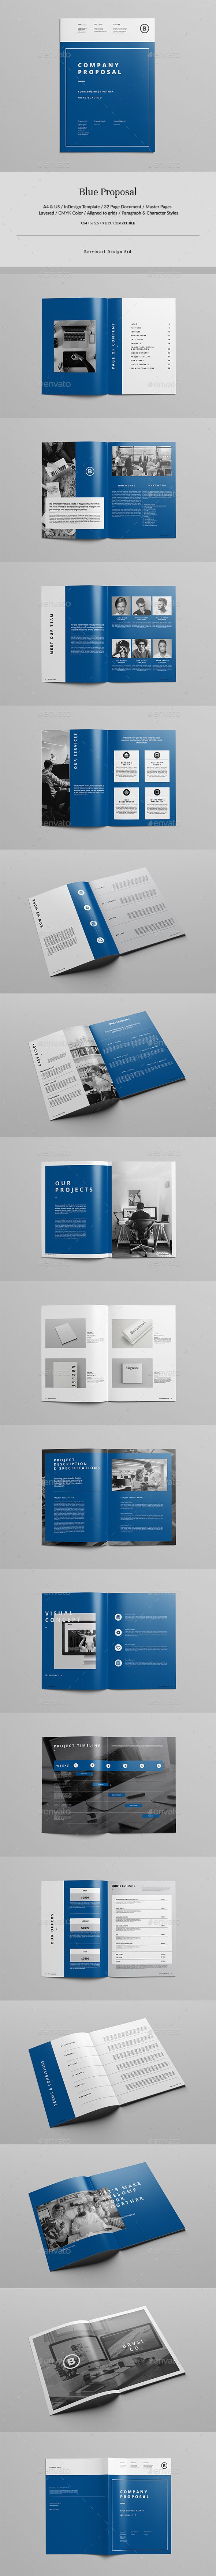 Blue #Proposal - Corporate #Brochures Download here: https://graphicriver.net/item/blue-proposal/19608778?ref=alena994